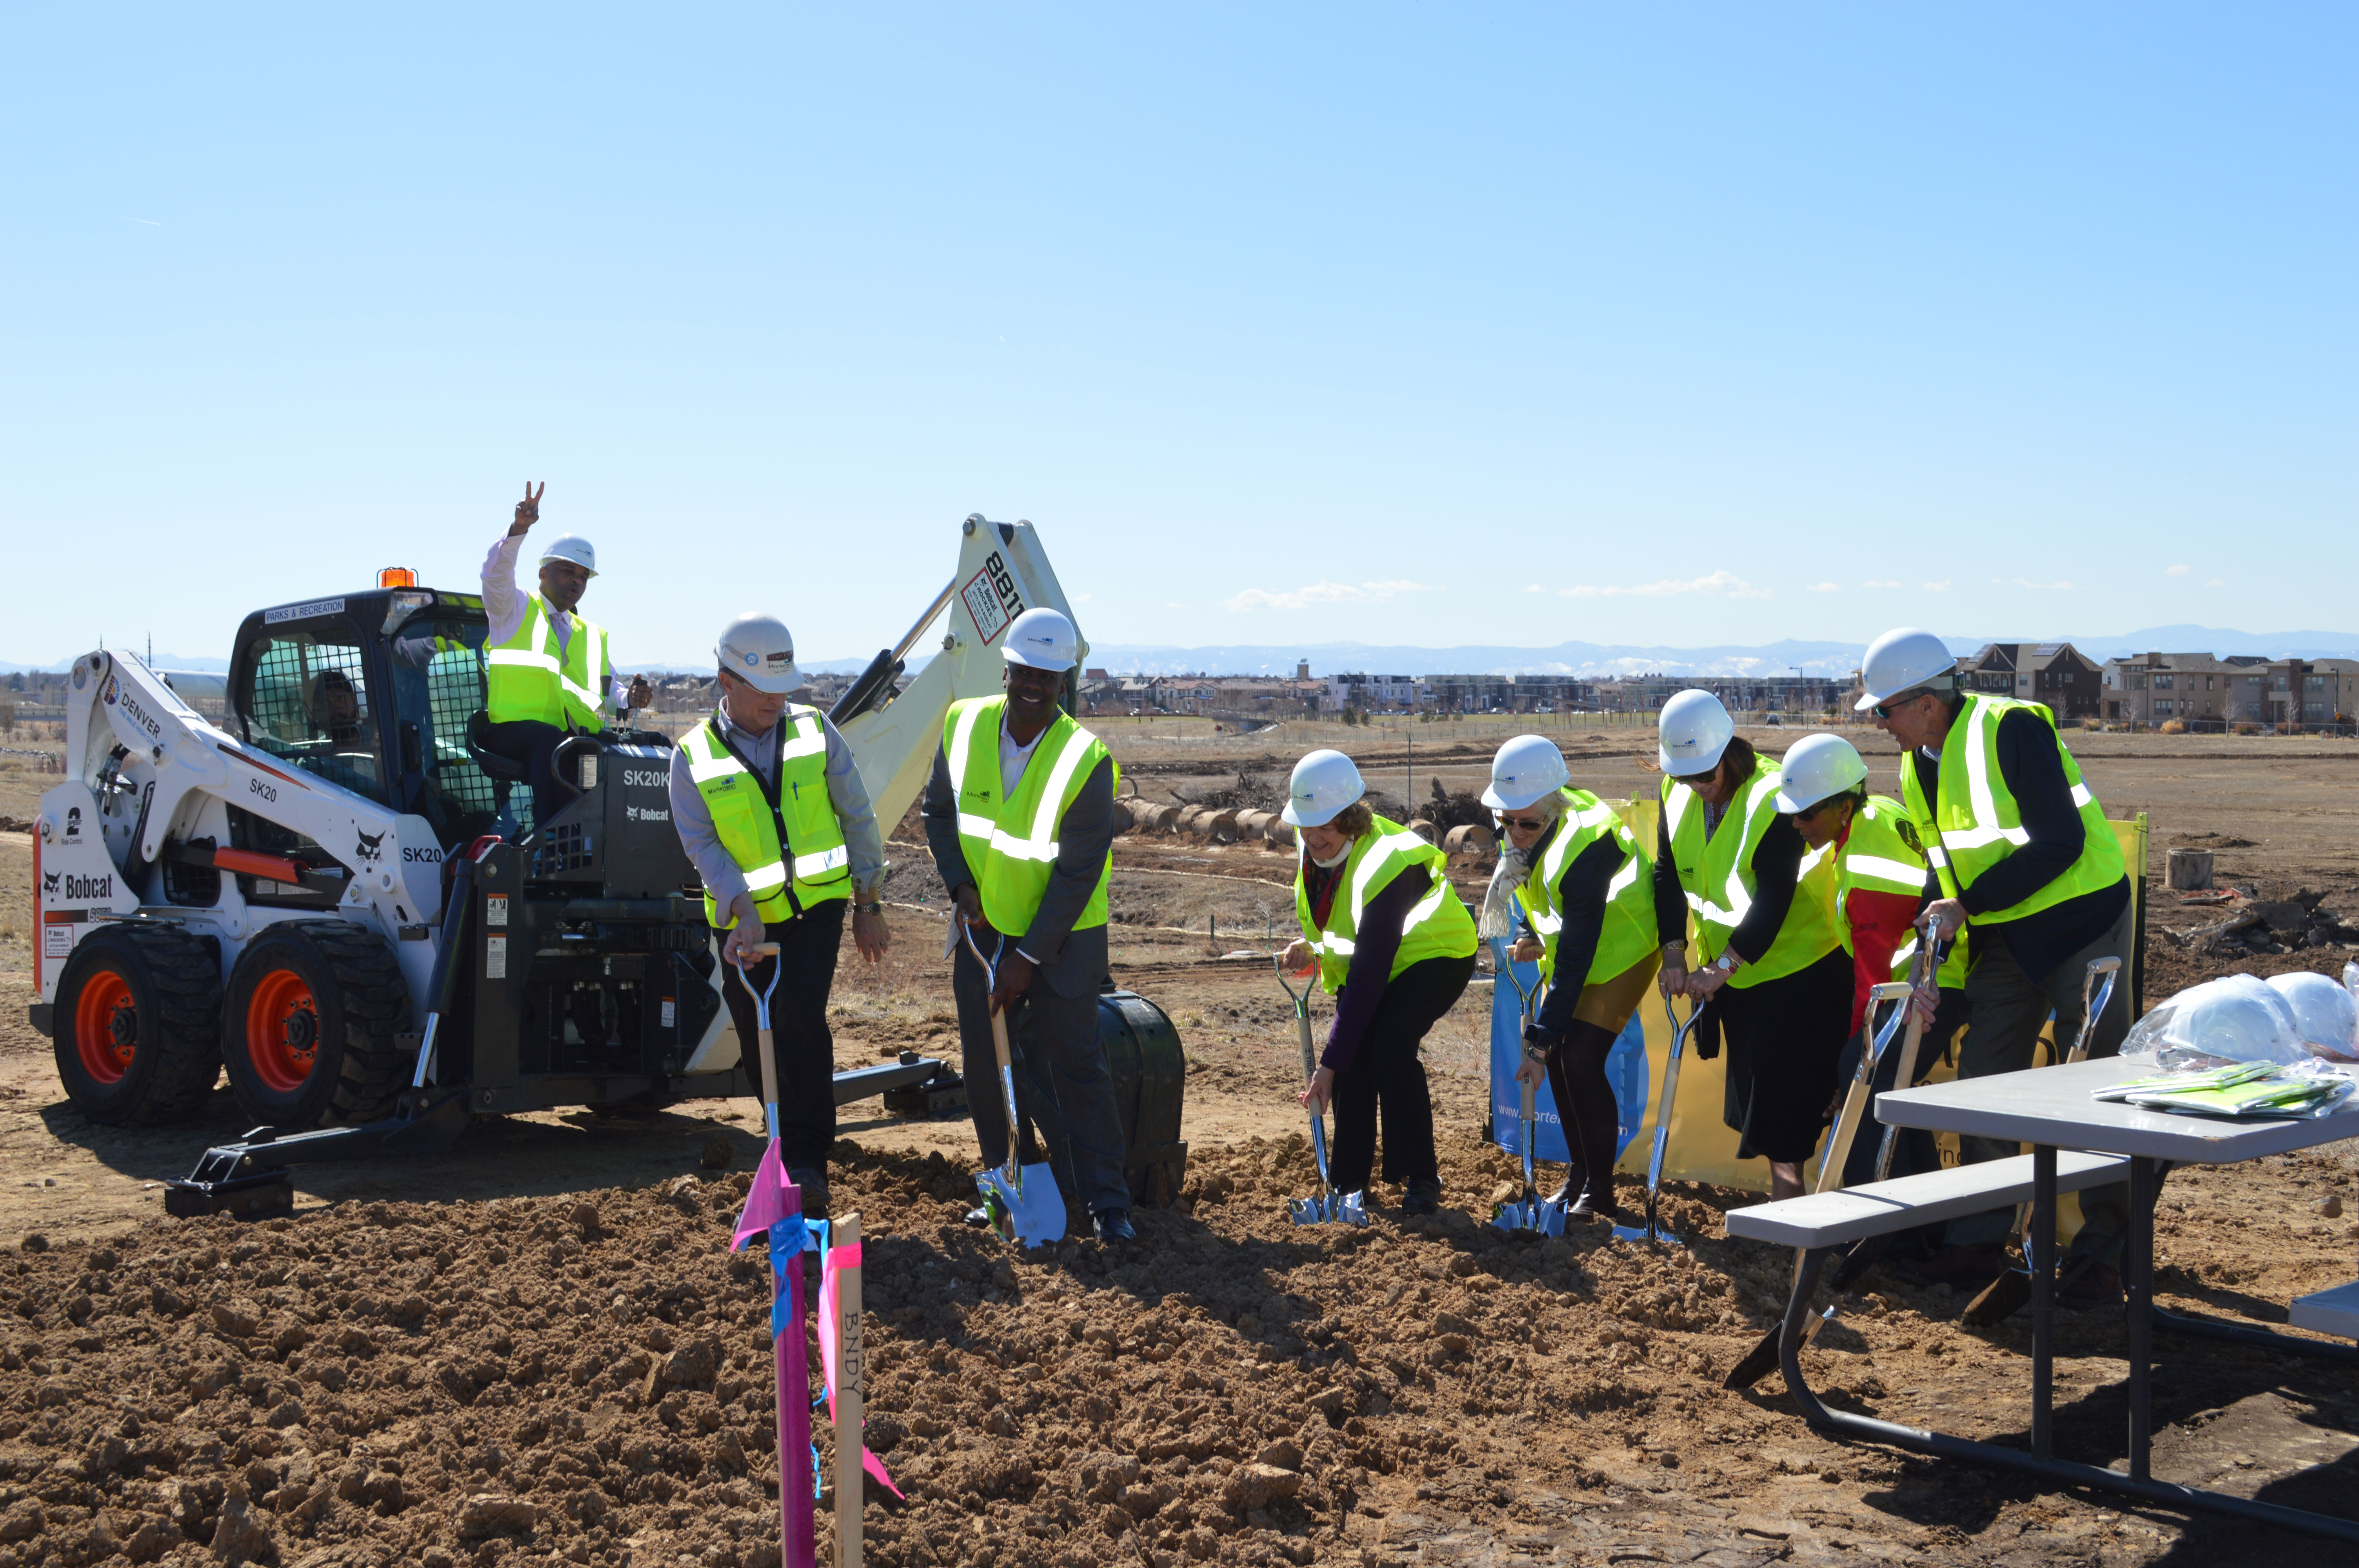 http://www.stapletondenver.com/wp-content/uploads/2015/03/Westerly-Creek-Ground-Breaking.jpg